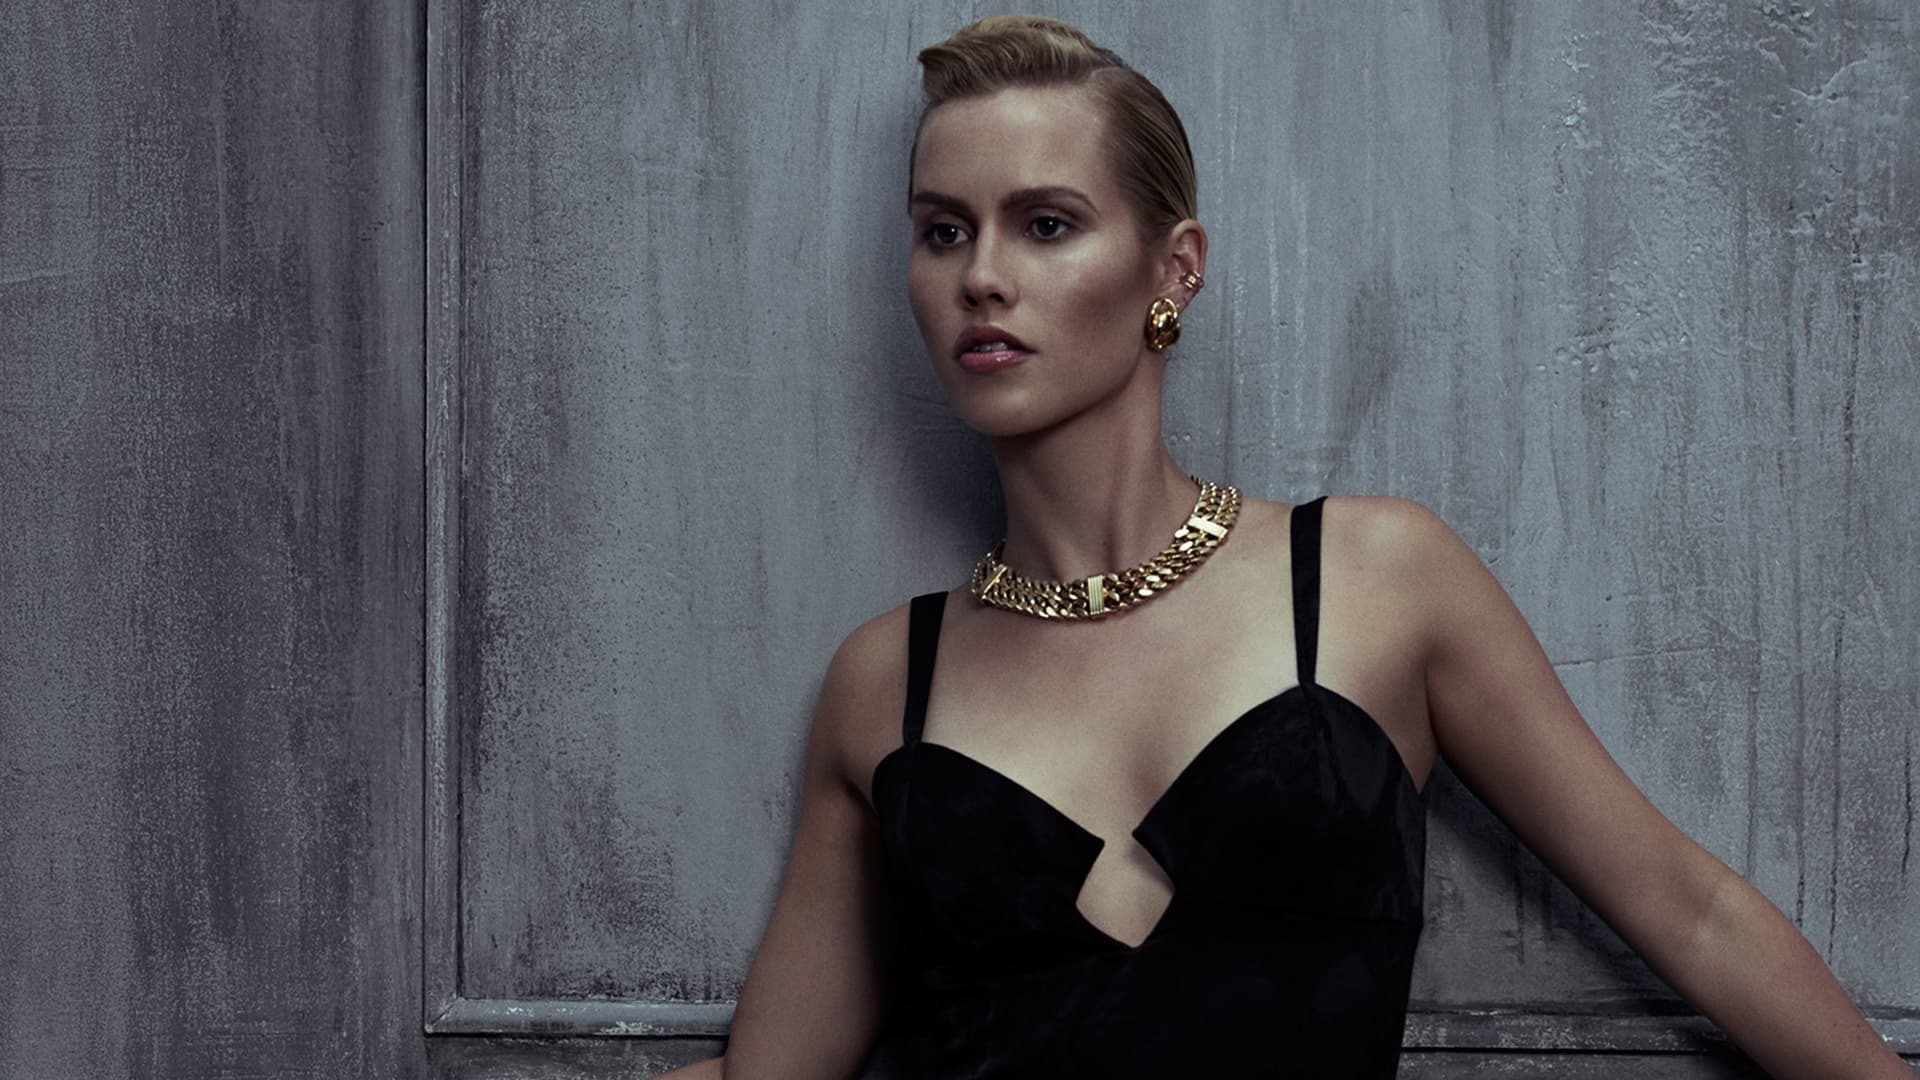 Claire Holt Wallpapers HD HIgh Quality Resolution Download